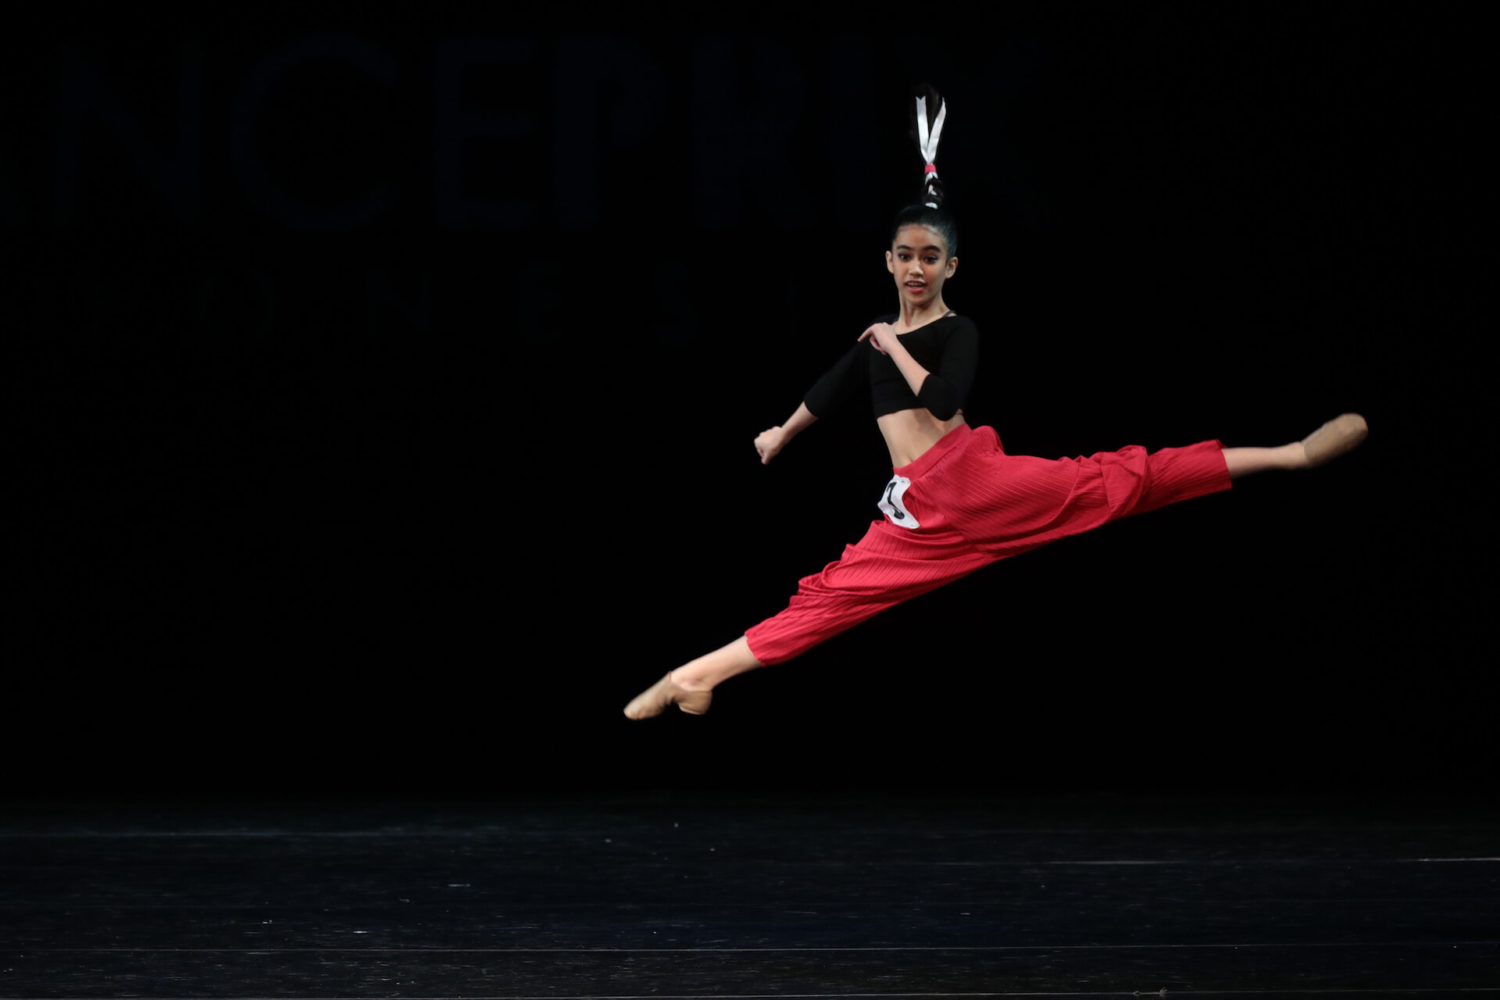 Dance Prix Indonesia 2019 – Contemporary Solo 3rd Place, Andisa Leota Annabel Tumiwa (Namarina Dance Academy)